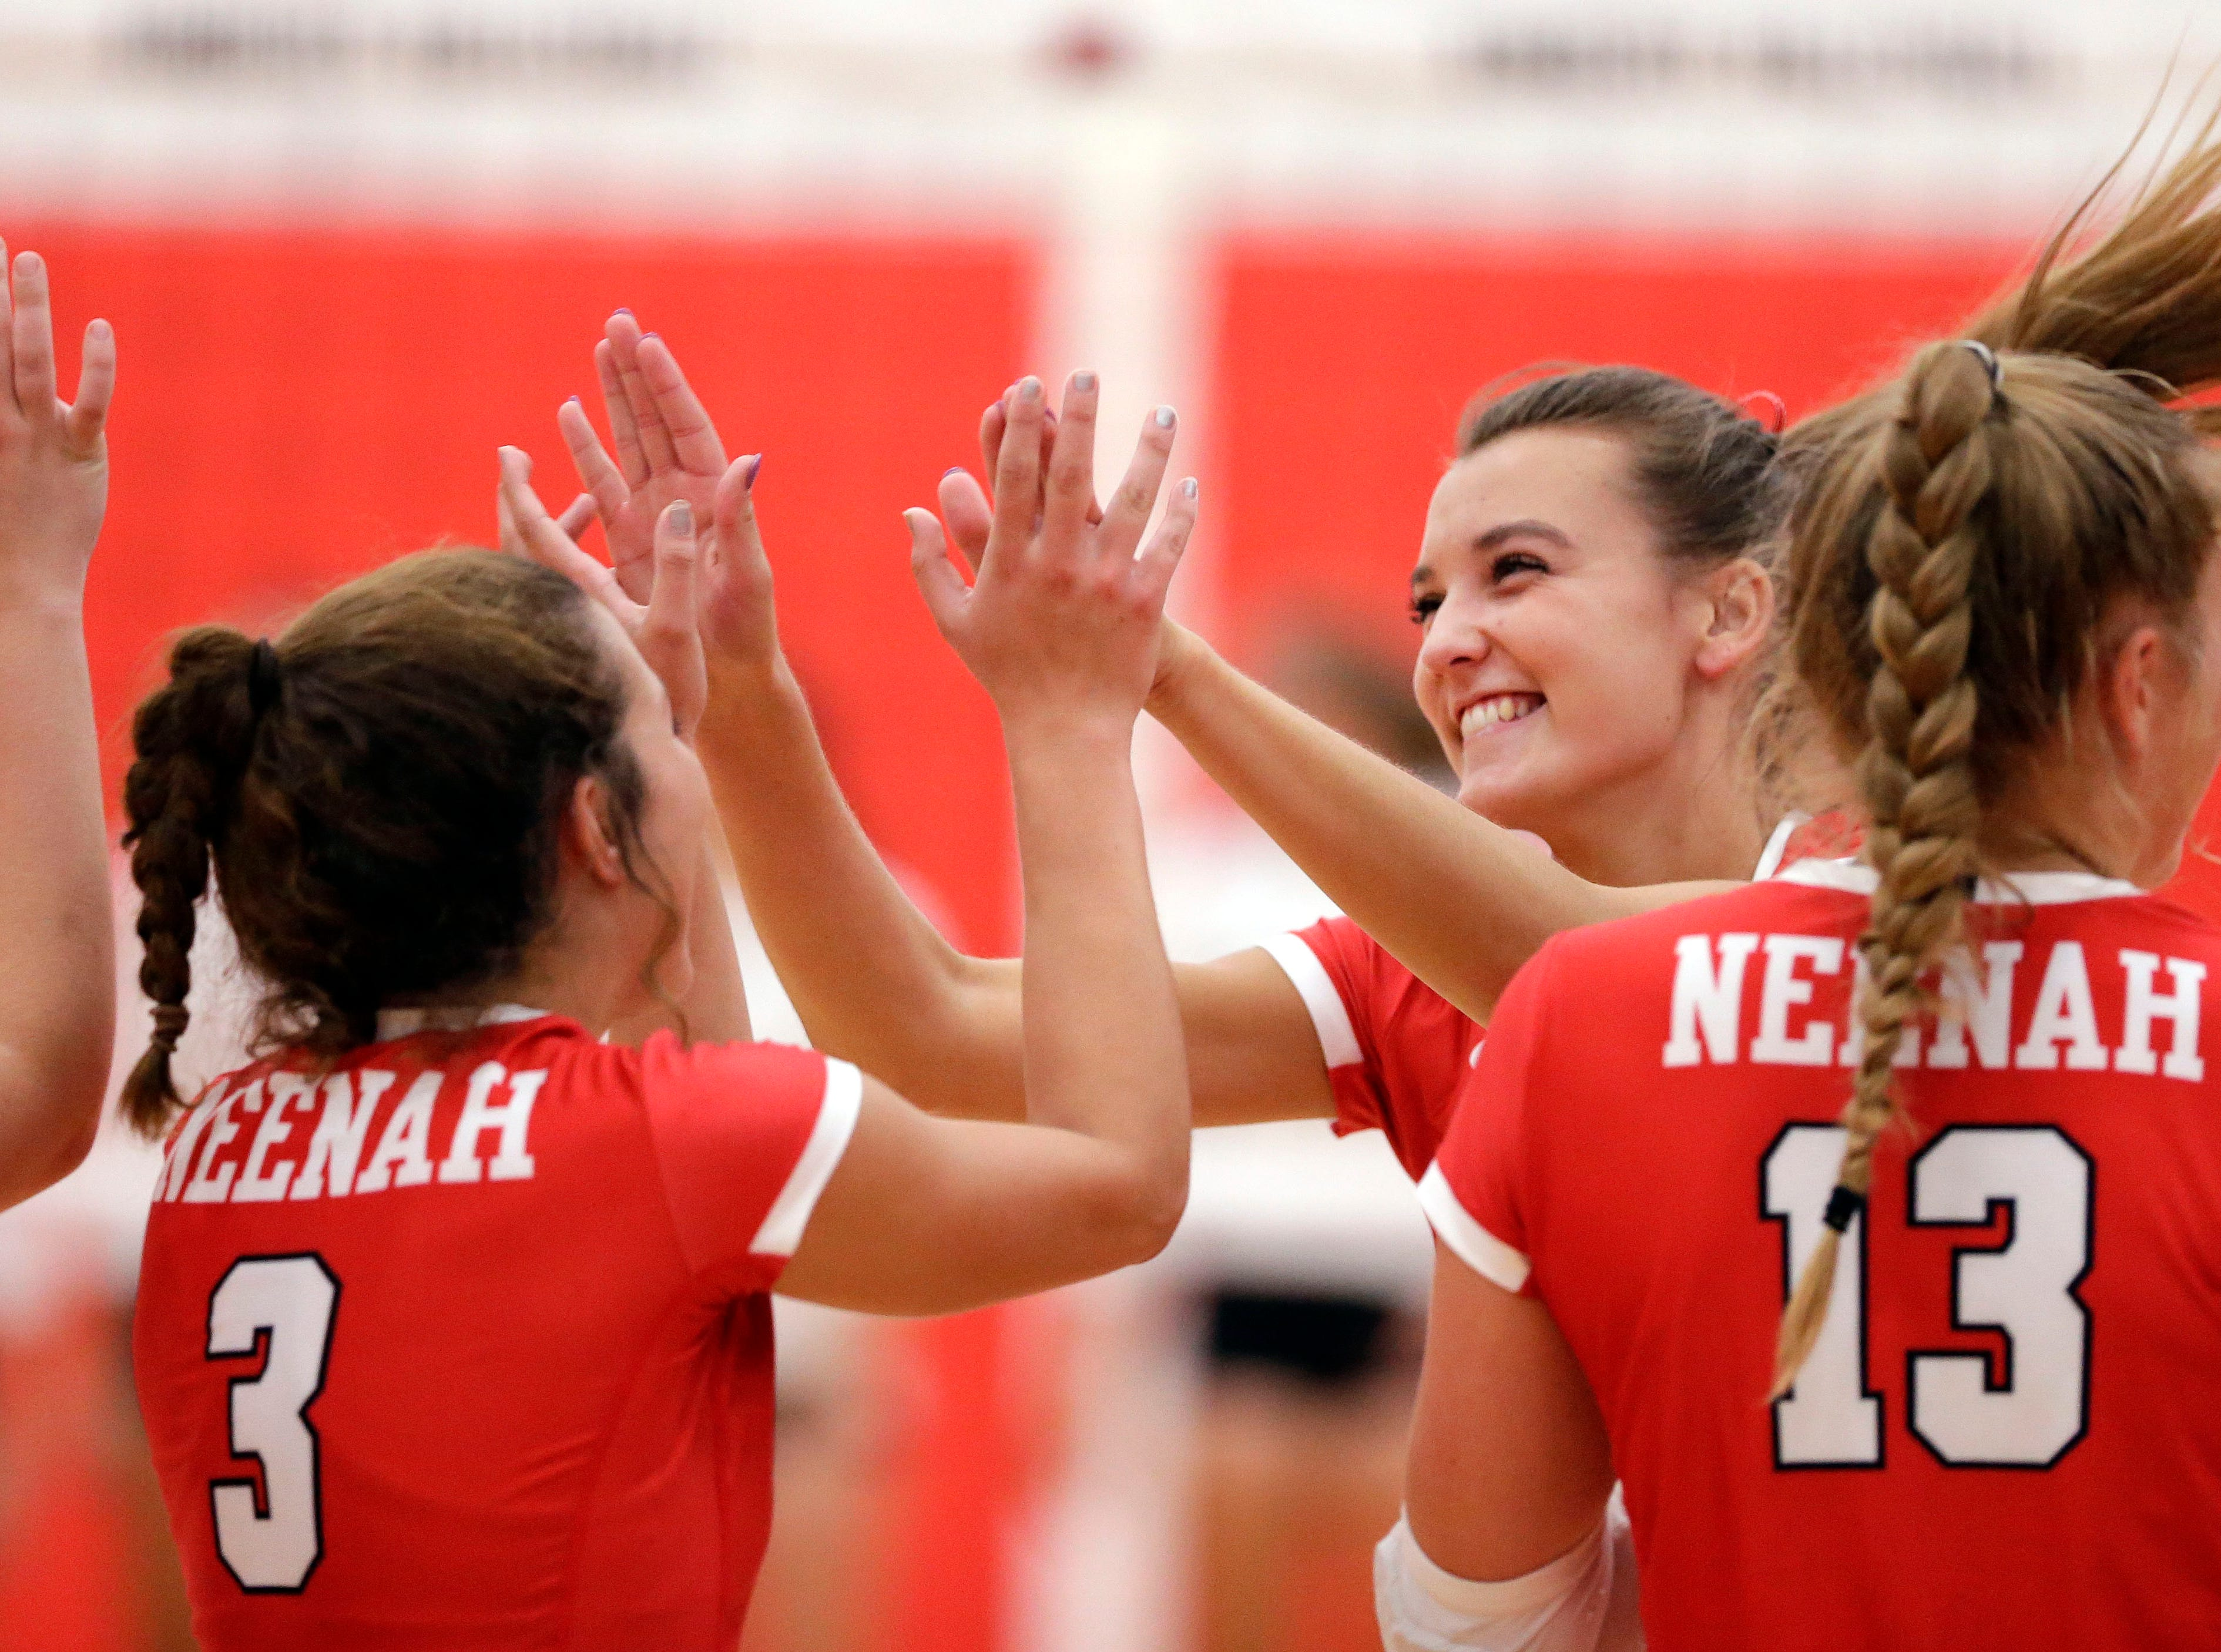 Addison Barnes of Neenah is introduced before the Rockets take on Kimberly in FVA girls volleyball Tuesday, September 11, 2018, at Kimberly High School in Kimberly, Wis.Ron Page/USA TODAY NETWORK-Wisconsin